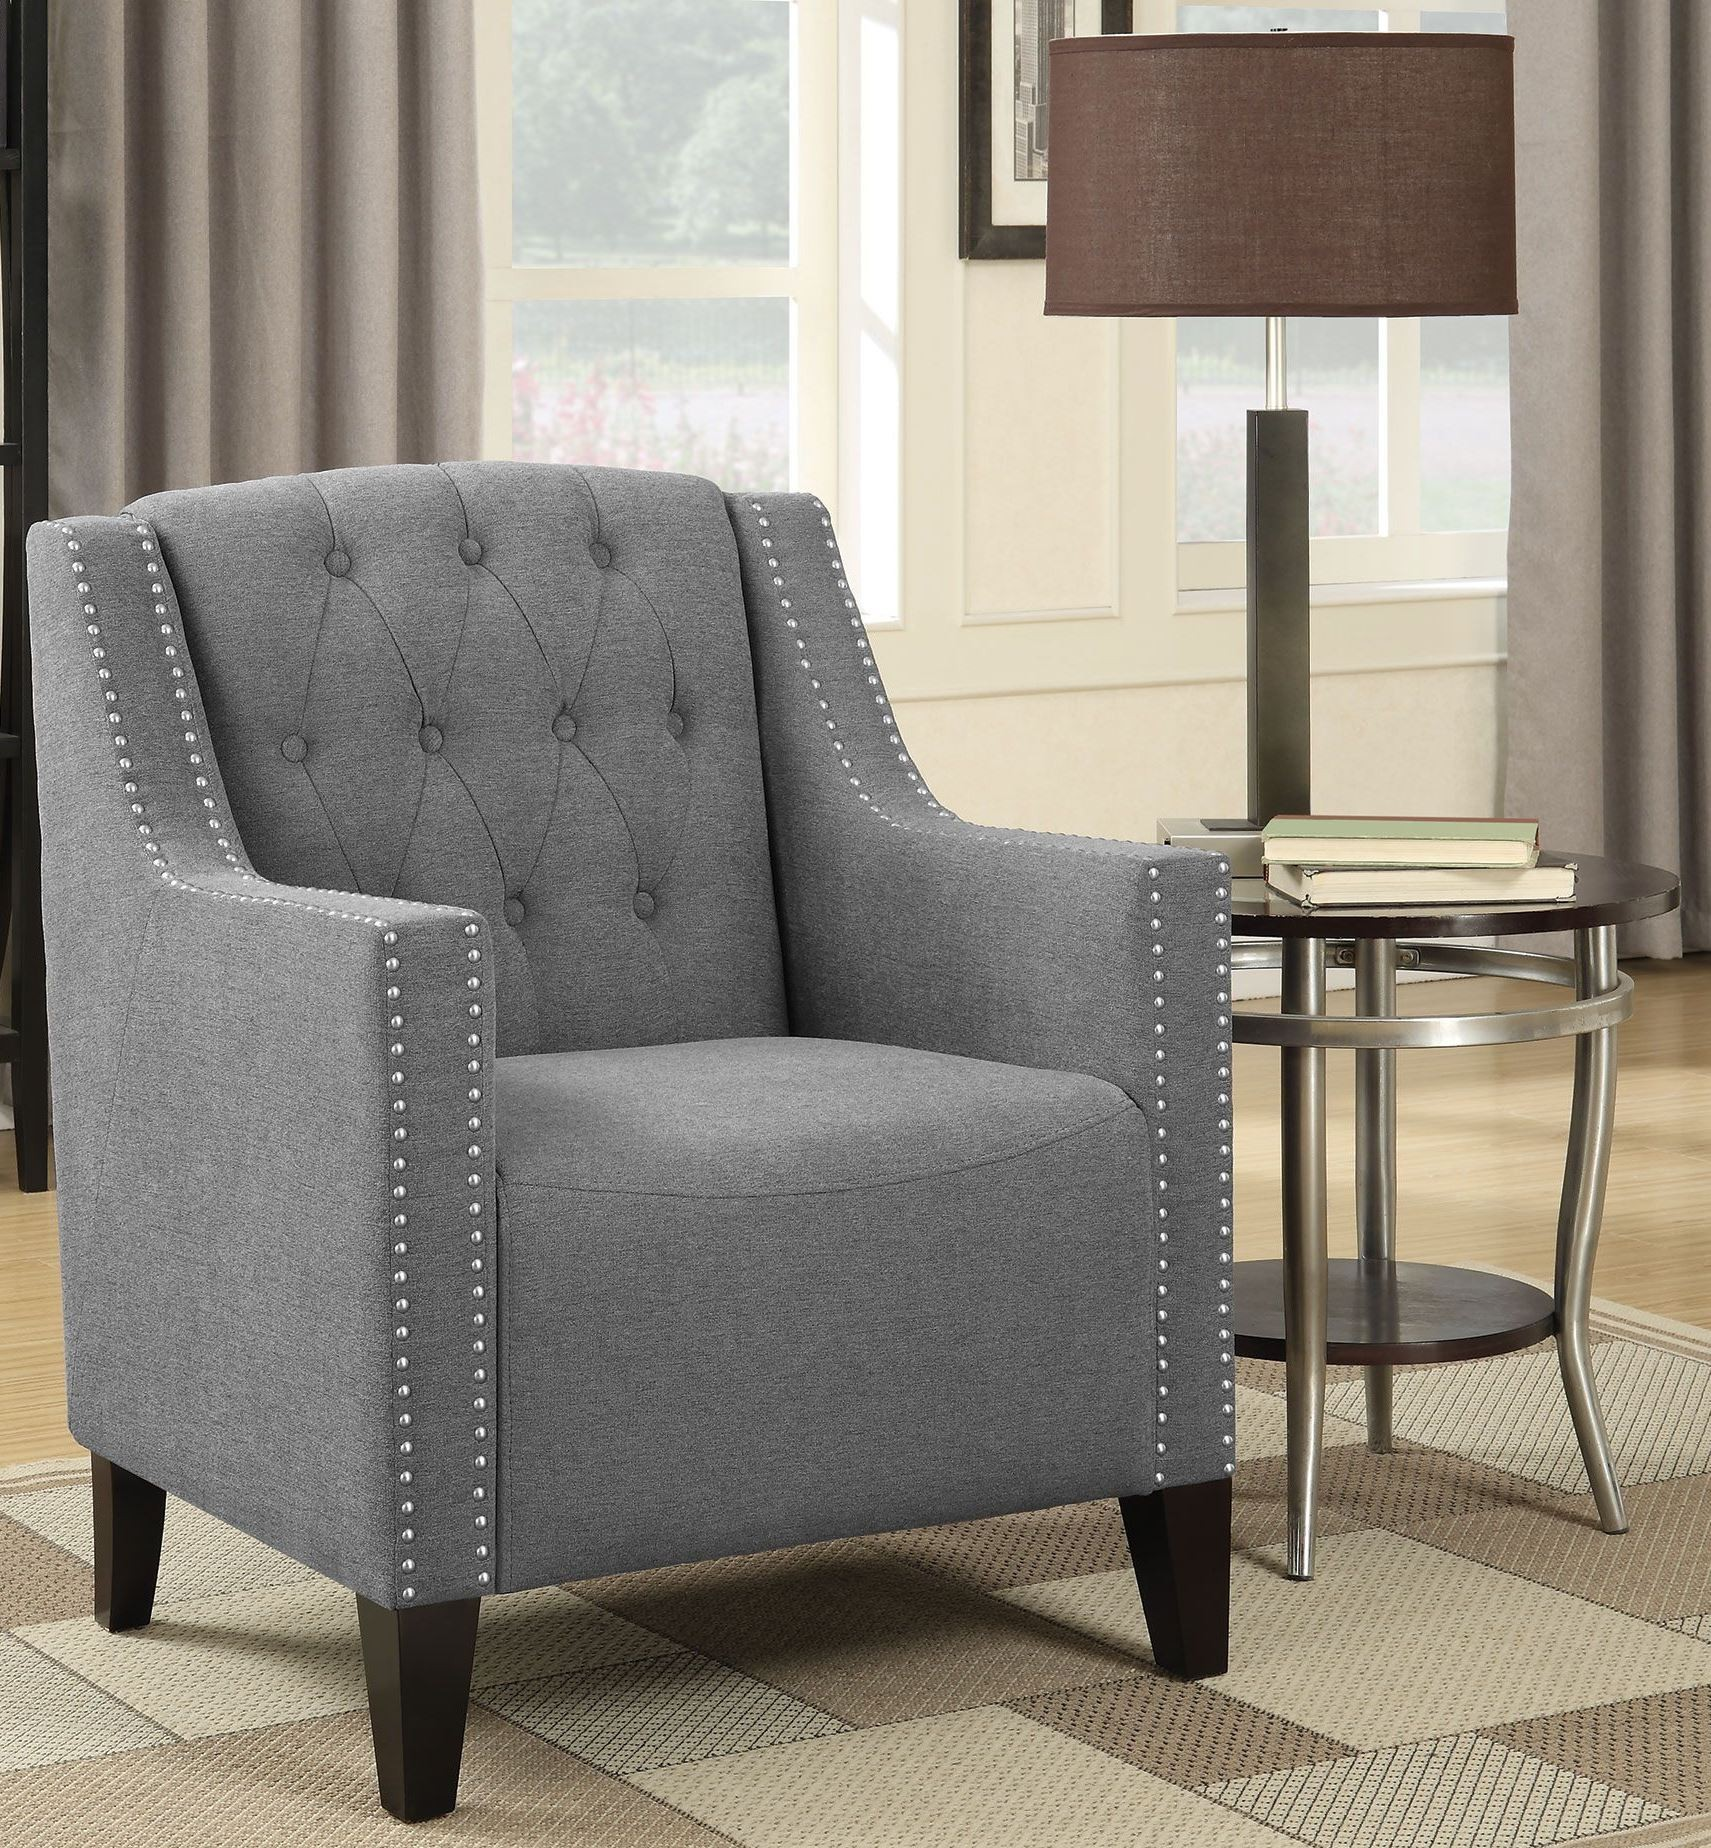 Grey And Dark Brown Accent Chair 902289 Coaster Furniture